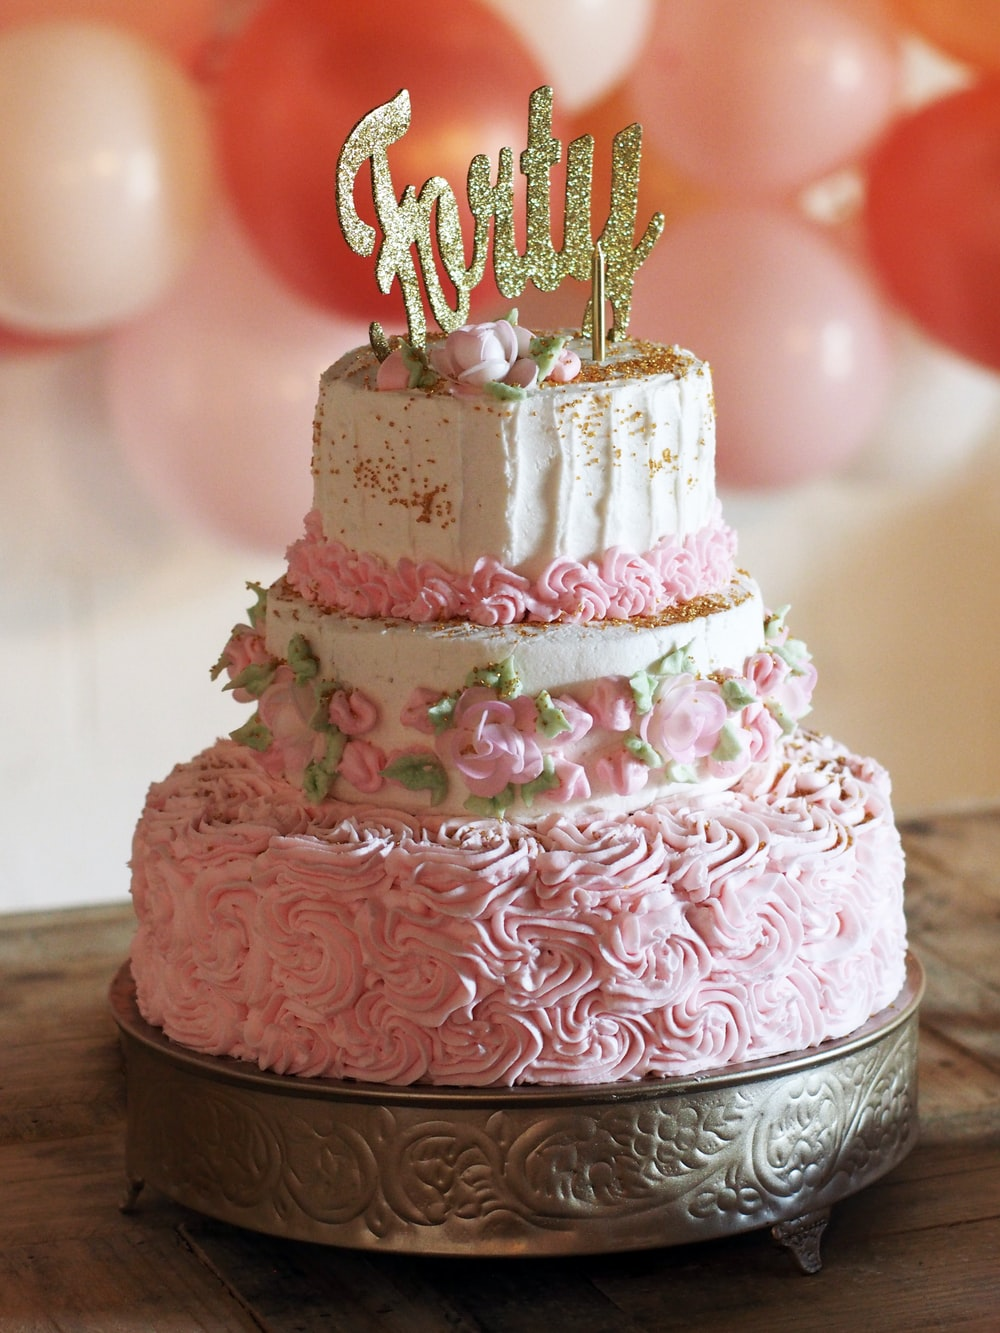 pink and white cake with candles on brown wooden table